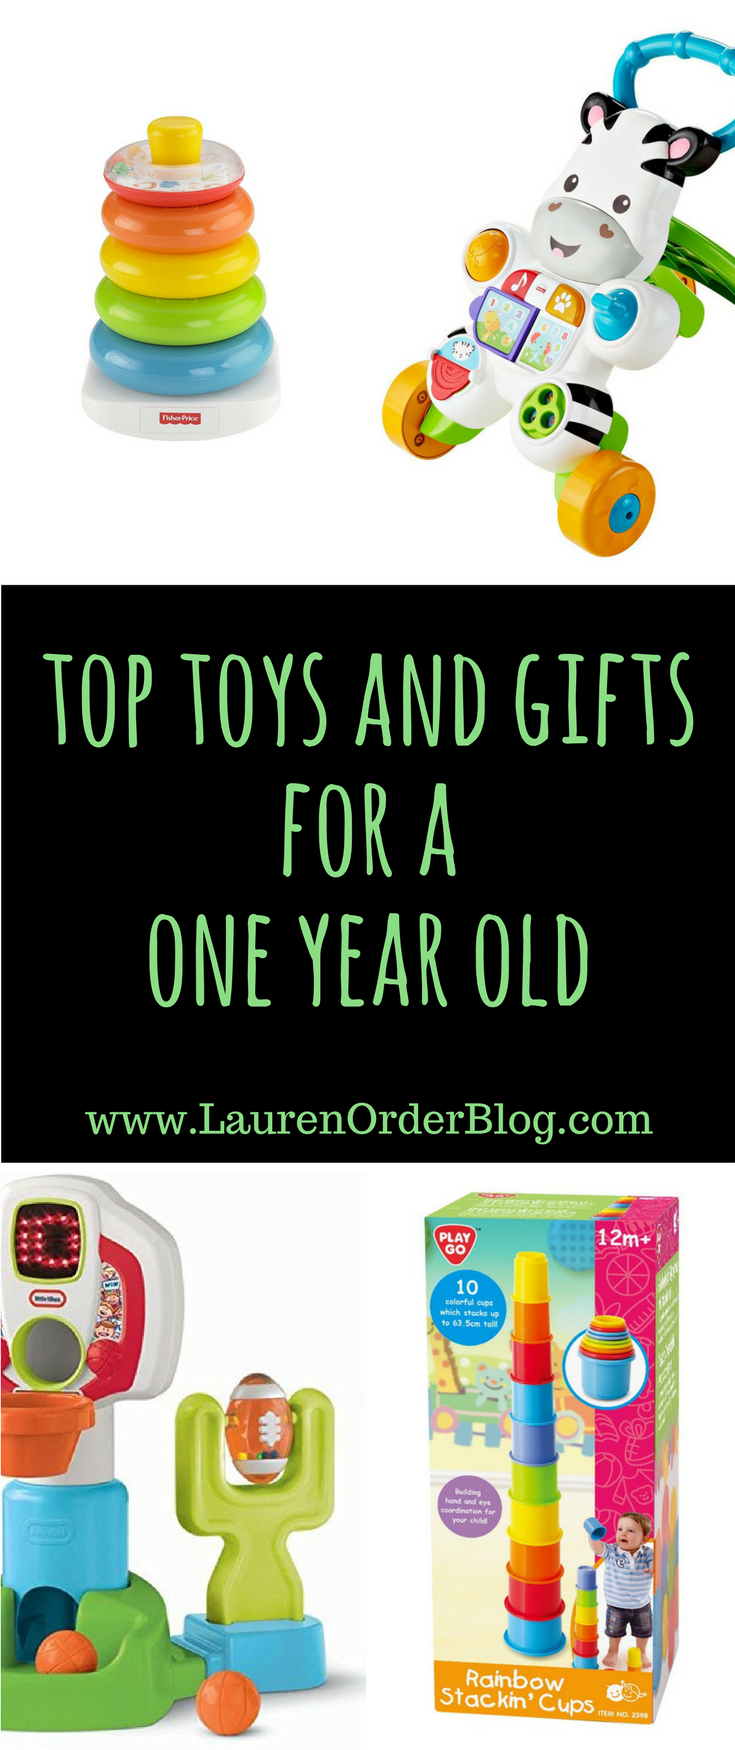 Christmas Gifts For 18 Month Old Boy.Top Toys For Your 12 18 Month Old